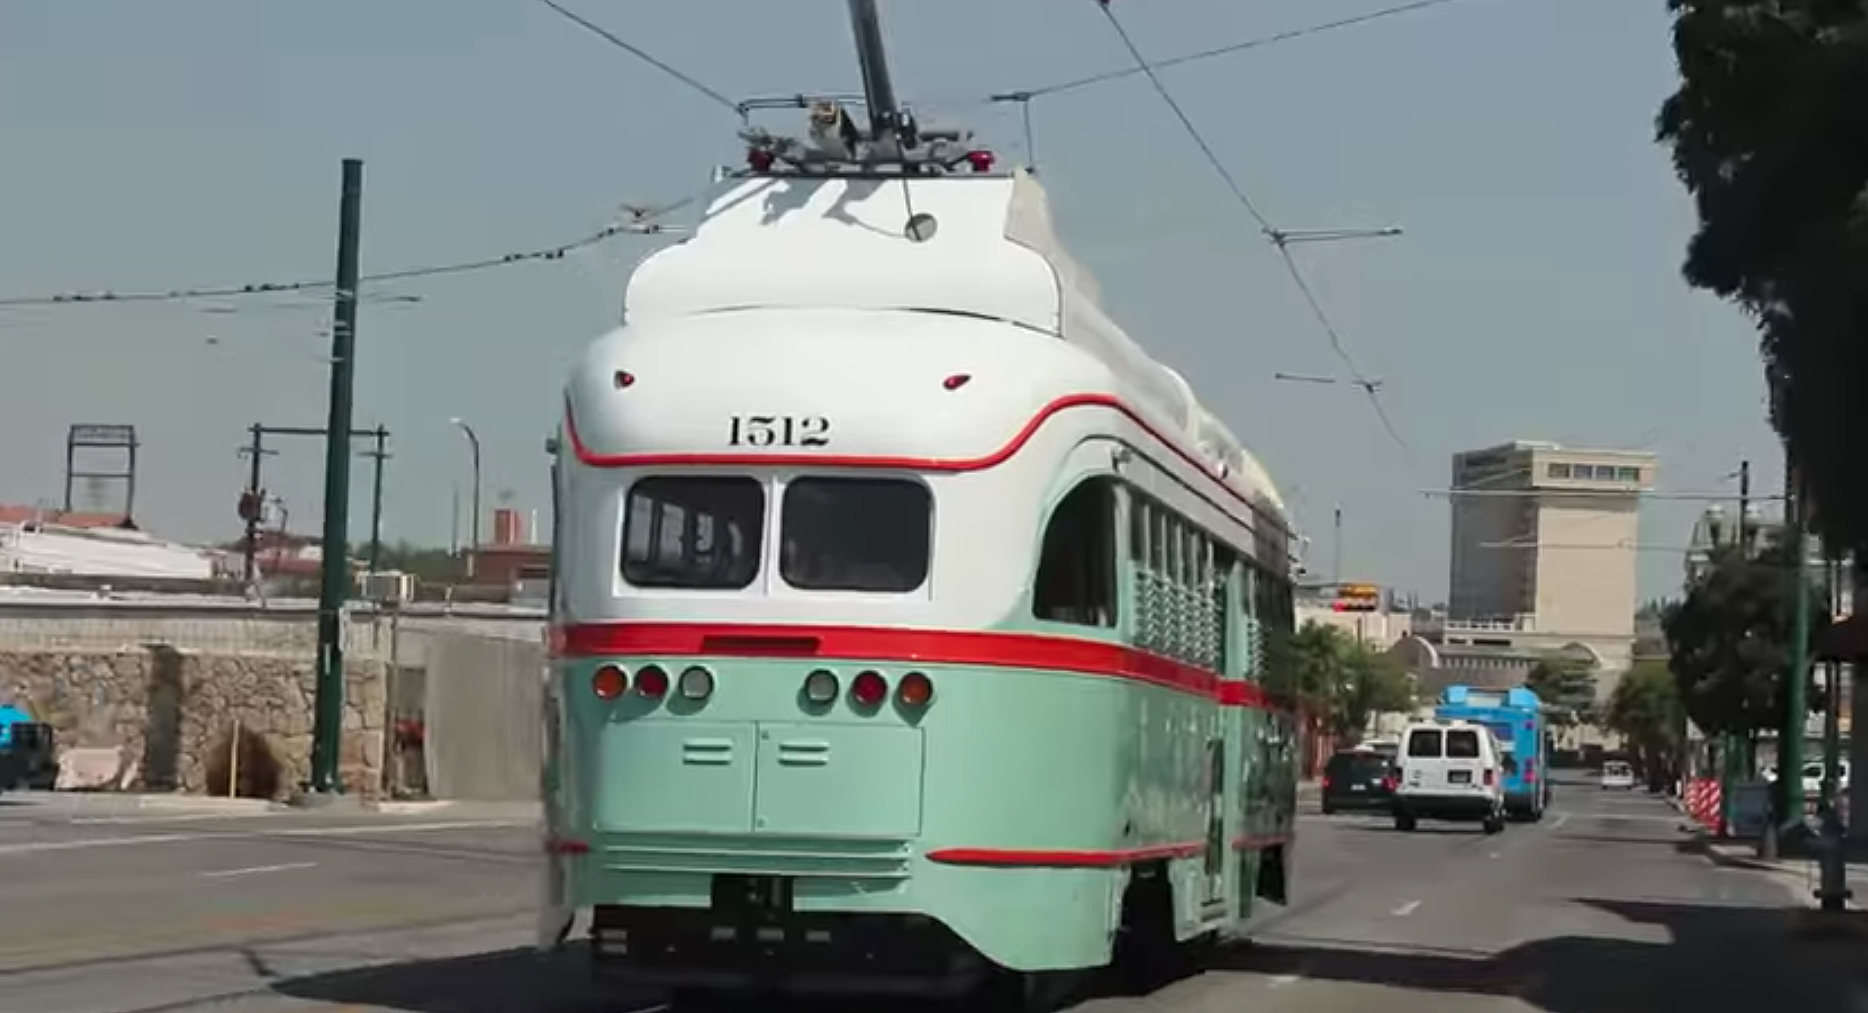 First Look At The Trolley In Downtown El Paso Traffic [VIDEO]